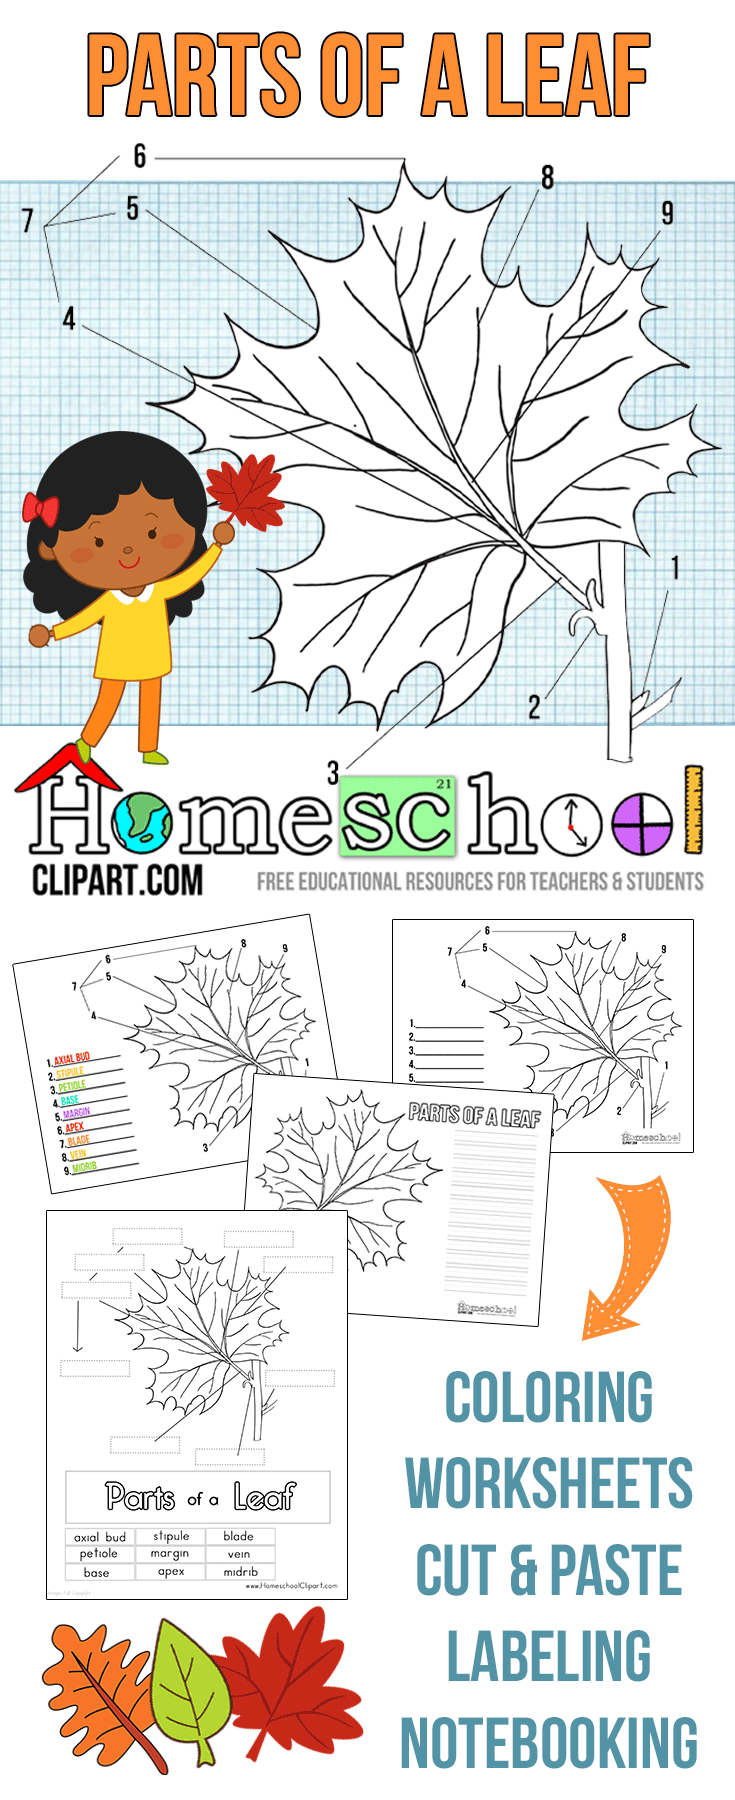 Notebook Worksheets Coloring Pages Labeling Charts Cut And Paste More Thecraftyclassroom 2015 09 17 Parts Of A Leaf Printables